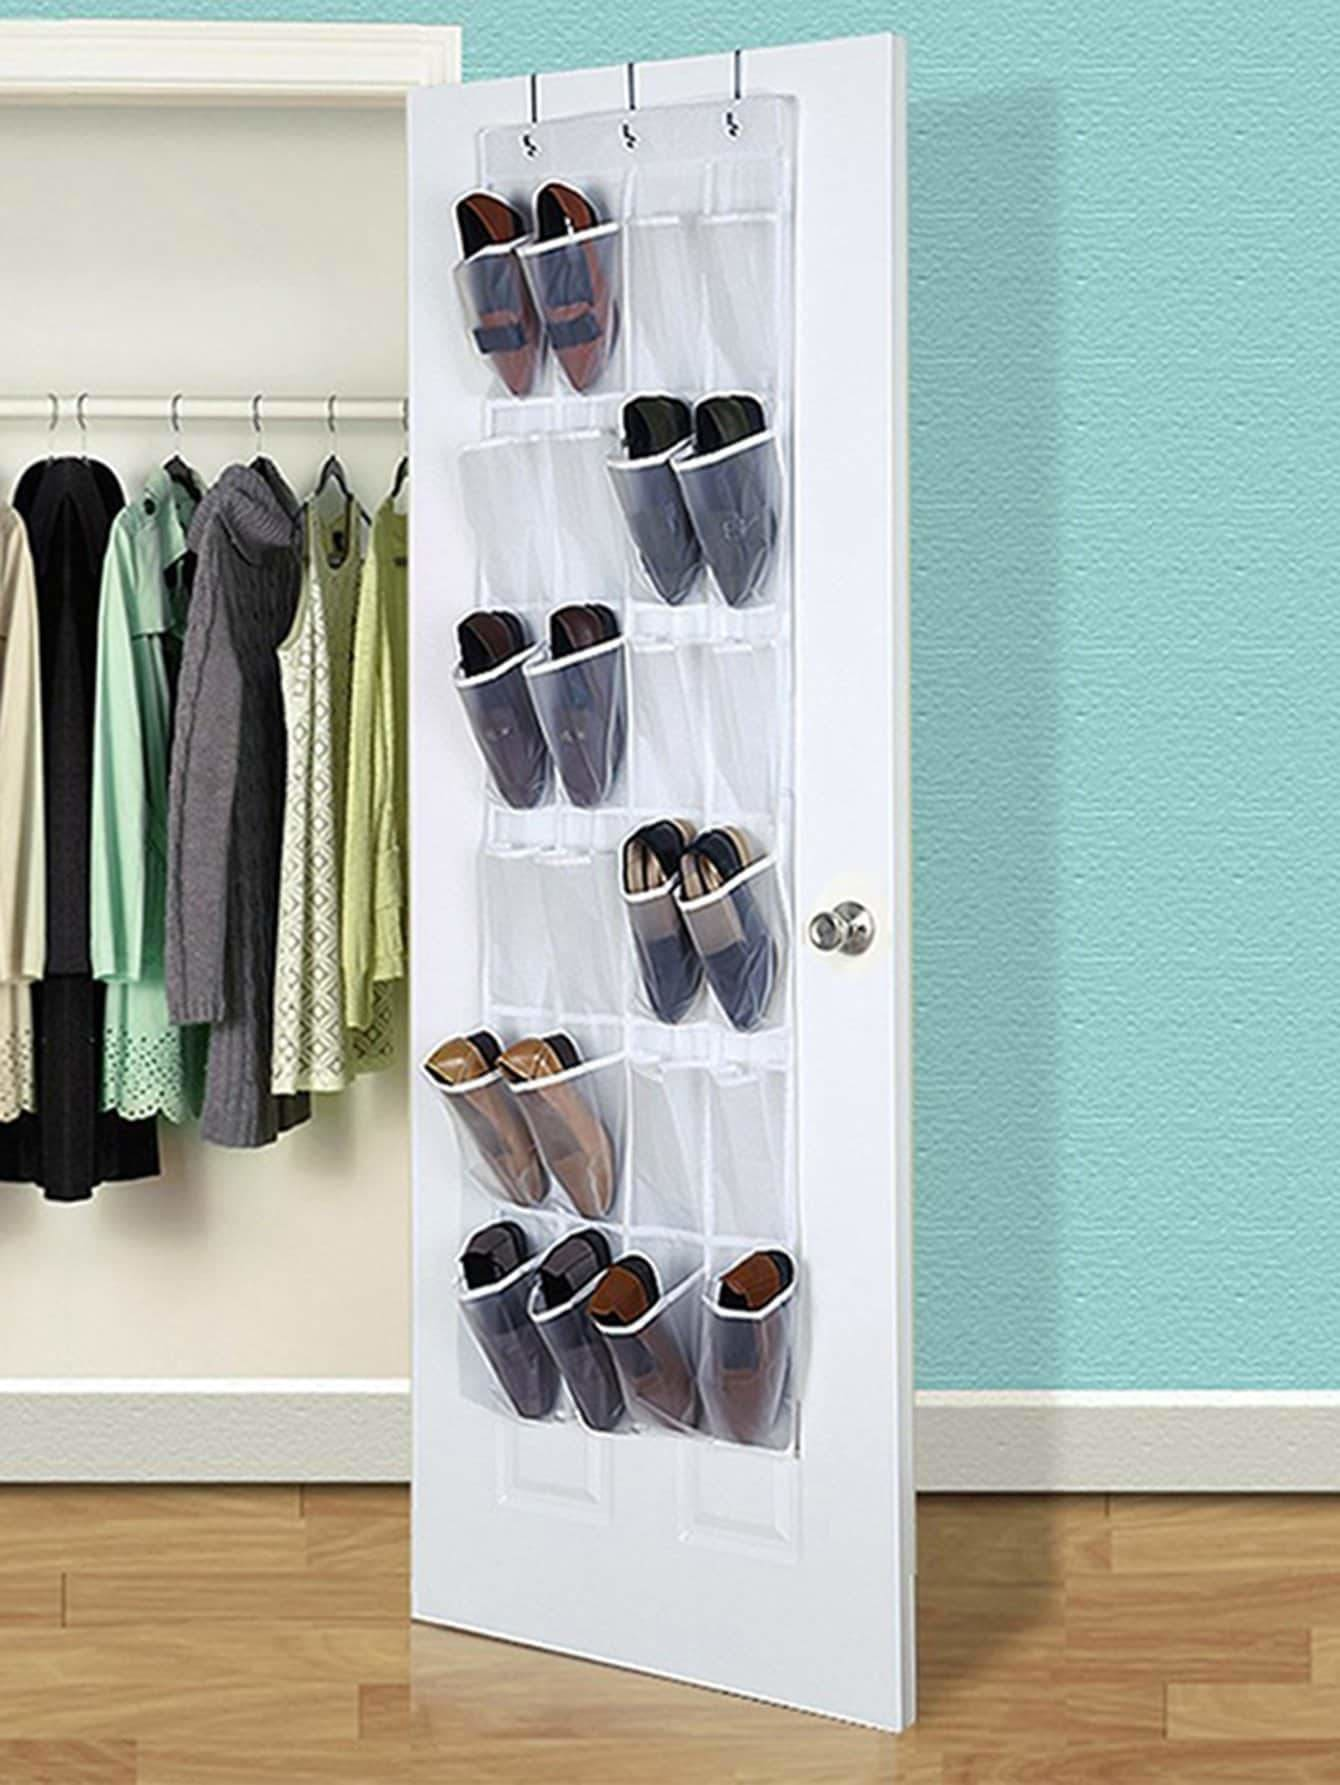 24grid Hanging Shoe Storage Bag - Storage & Organization